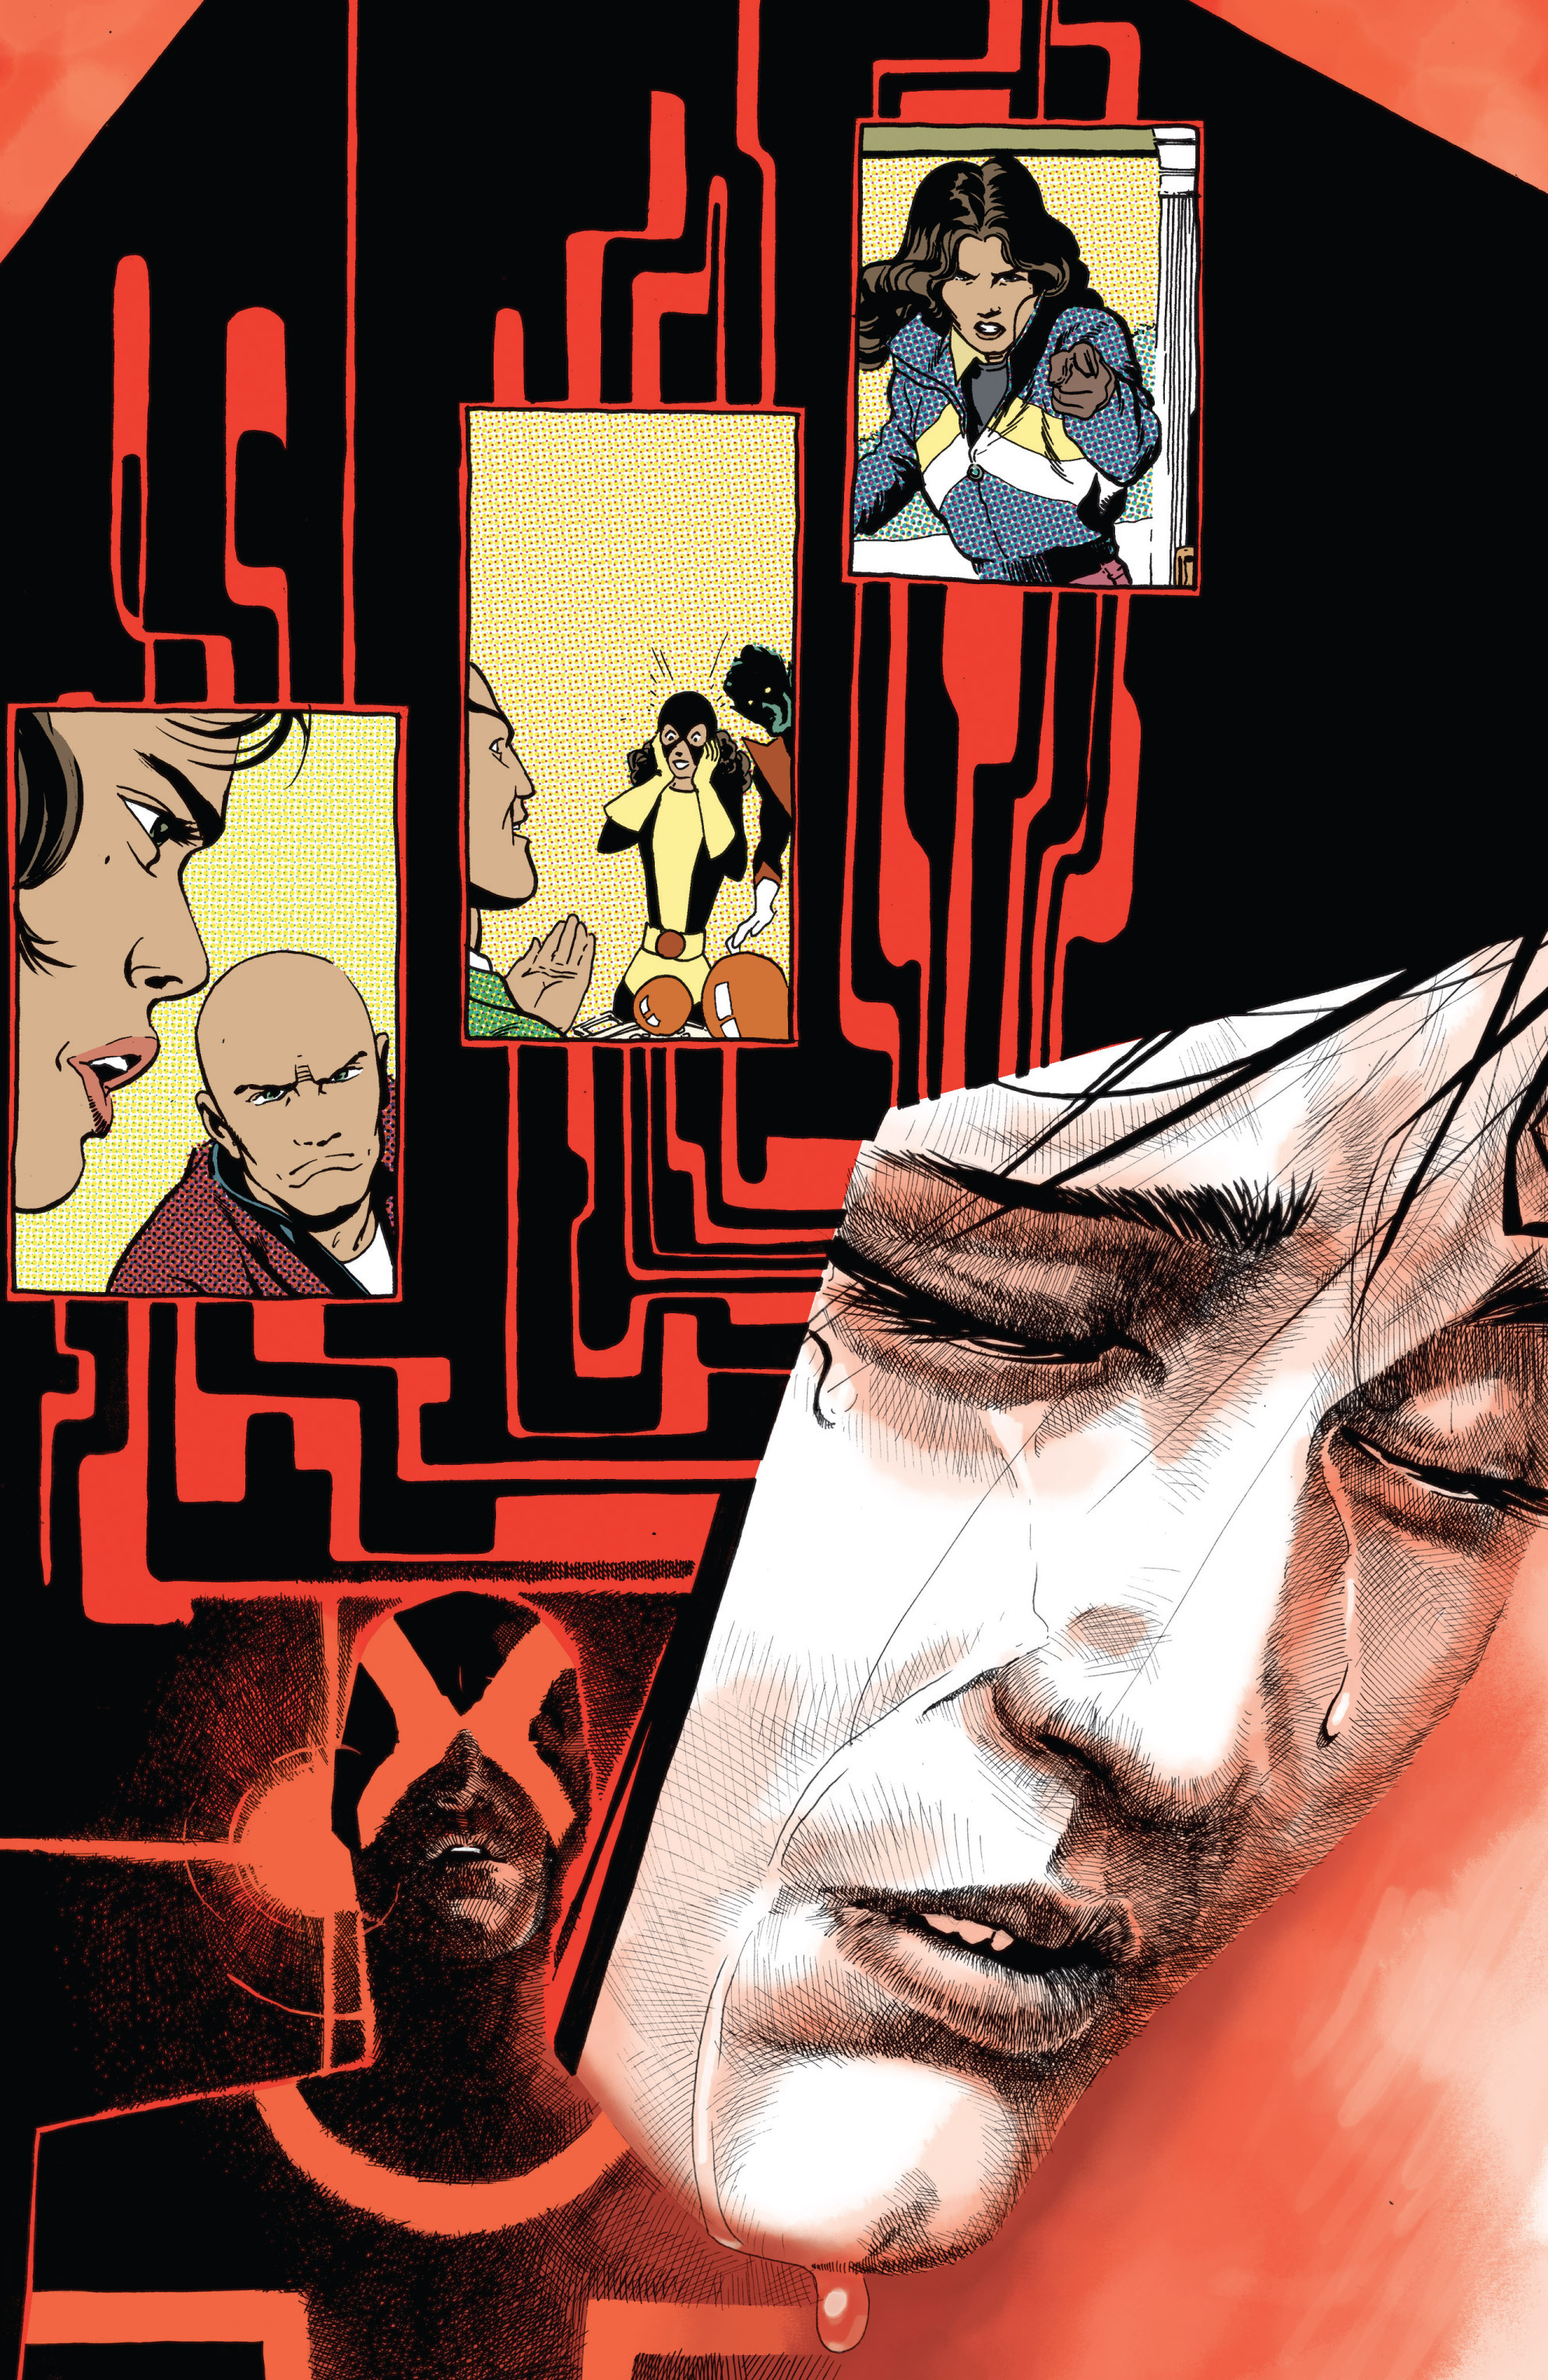 Read online Uncanny X-Men (2013) comic -  Issue # _TPB 3 - The Good, The Bad, The Inhuman - 94